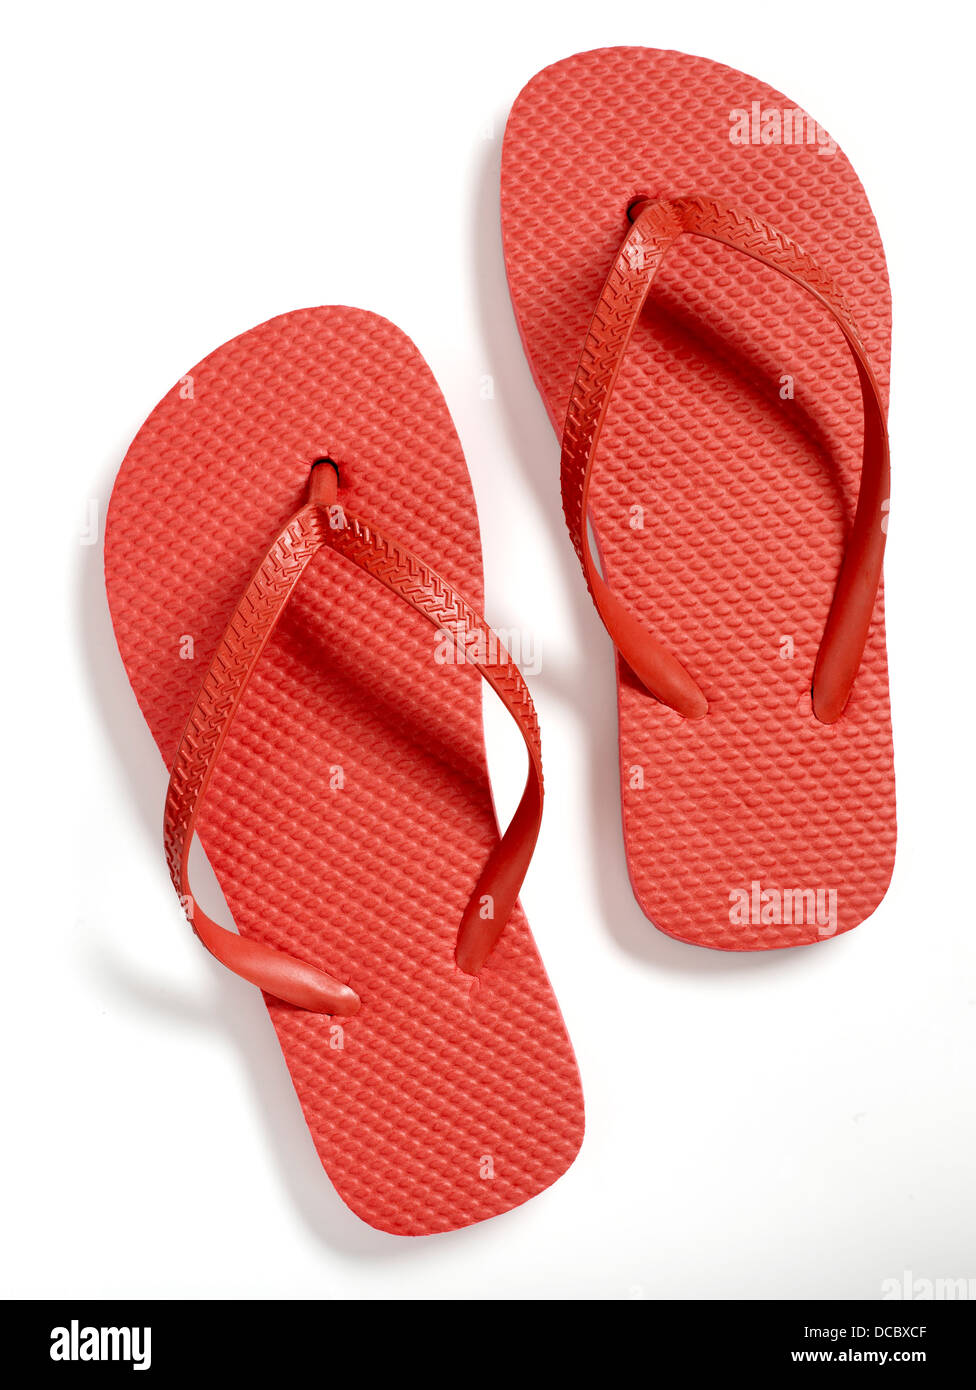 0f833d5e4a1 Red Slippers Stock Photo  59269183 - Alamy